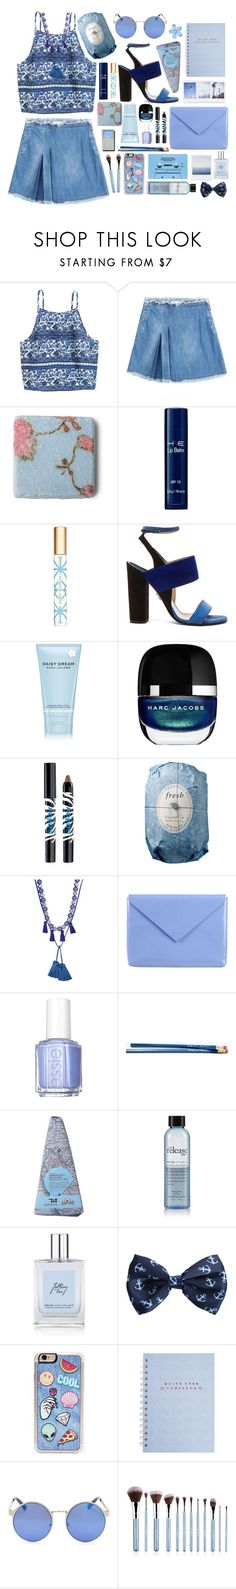 """""""Promise Not to Promise Anymore"""" by sverdesca ❤ liked on Polyvore featuring See by Chloé, Jane Iredale, Tory Burch, Paul Andrew, Marc Jacobs, Sisley, Fresh, Shourouk, Acne Studios and Essie"""